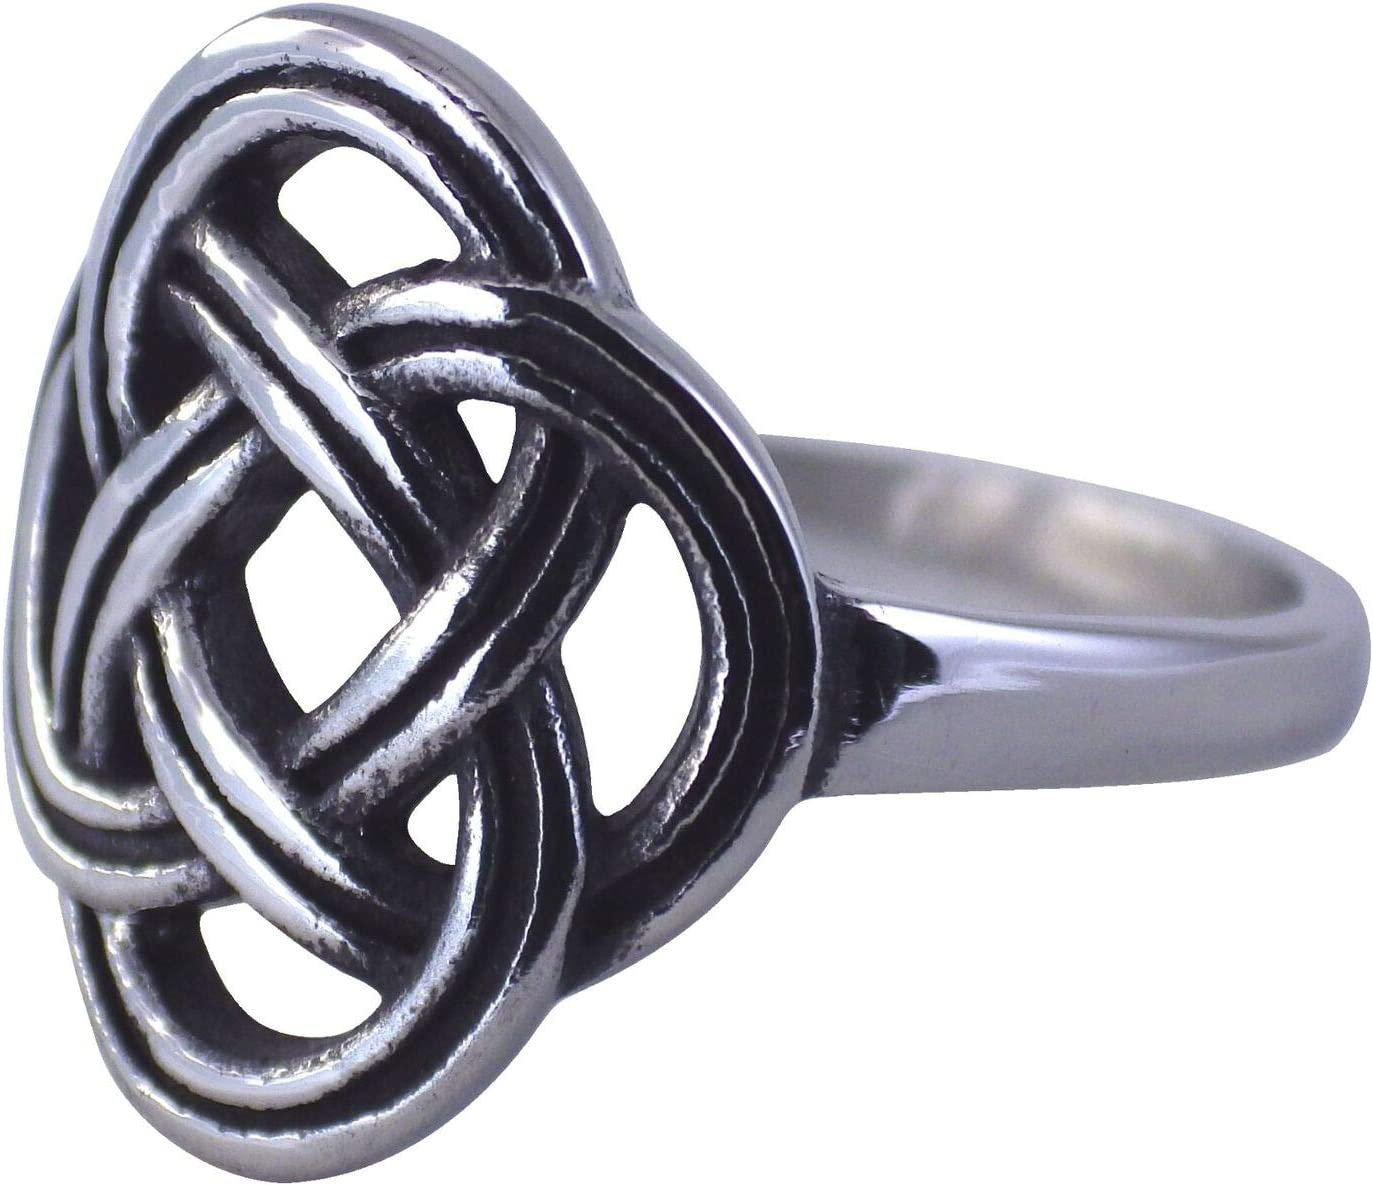 Ð¡harm - Celtic Knot Ring Womens All stores are sold Wea Silver Stainless Dara Phoenix Mall Steel